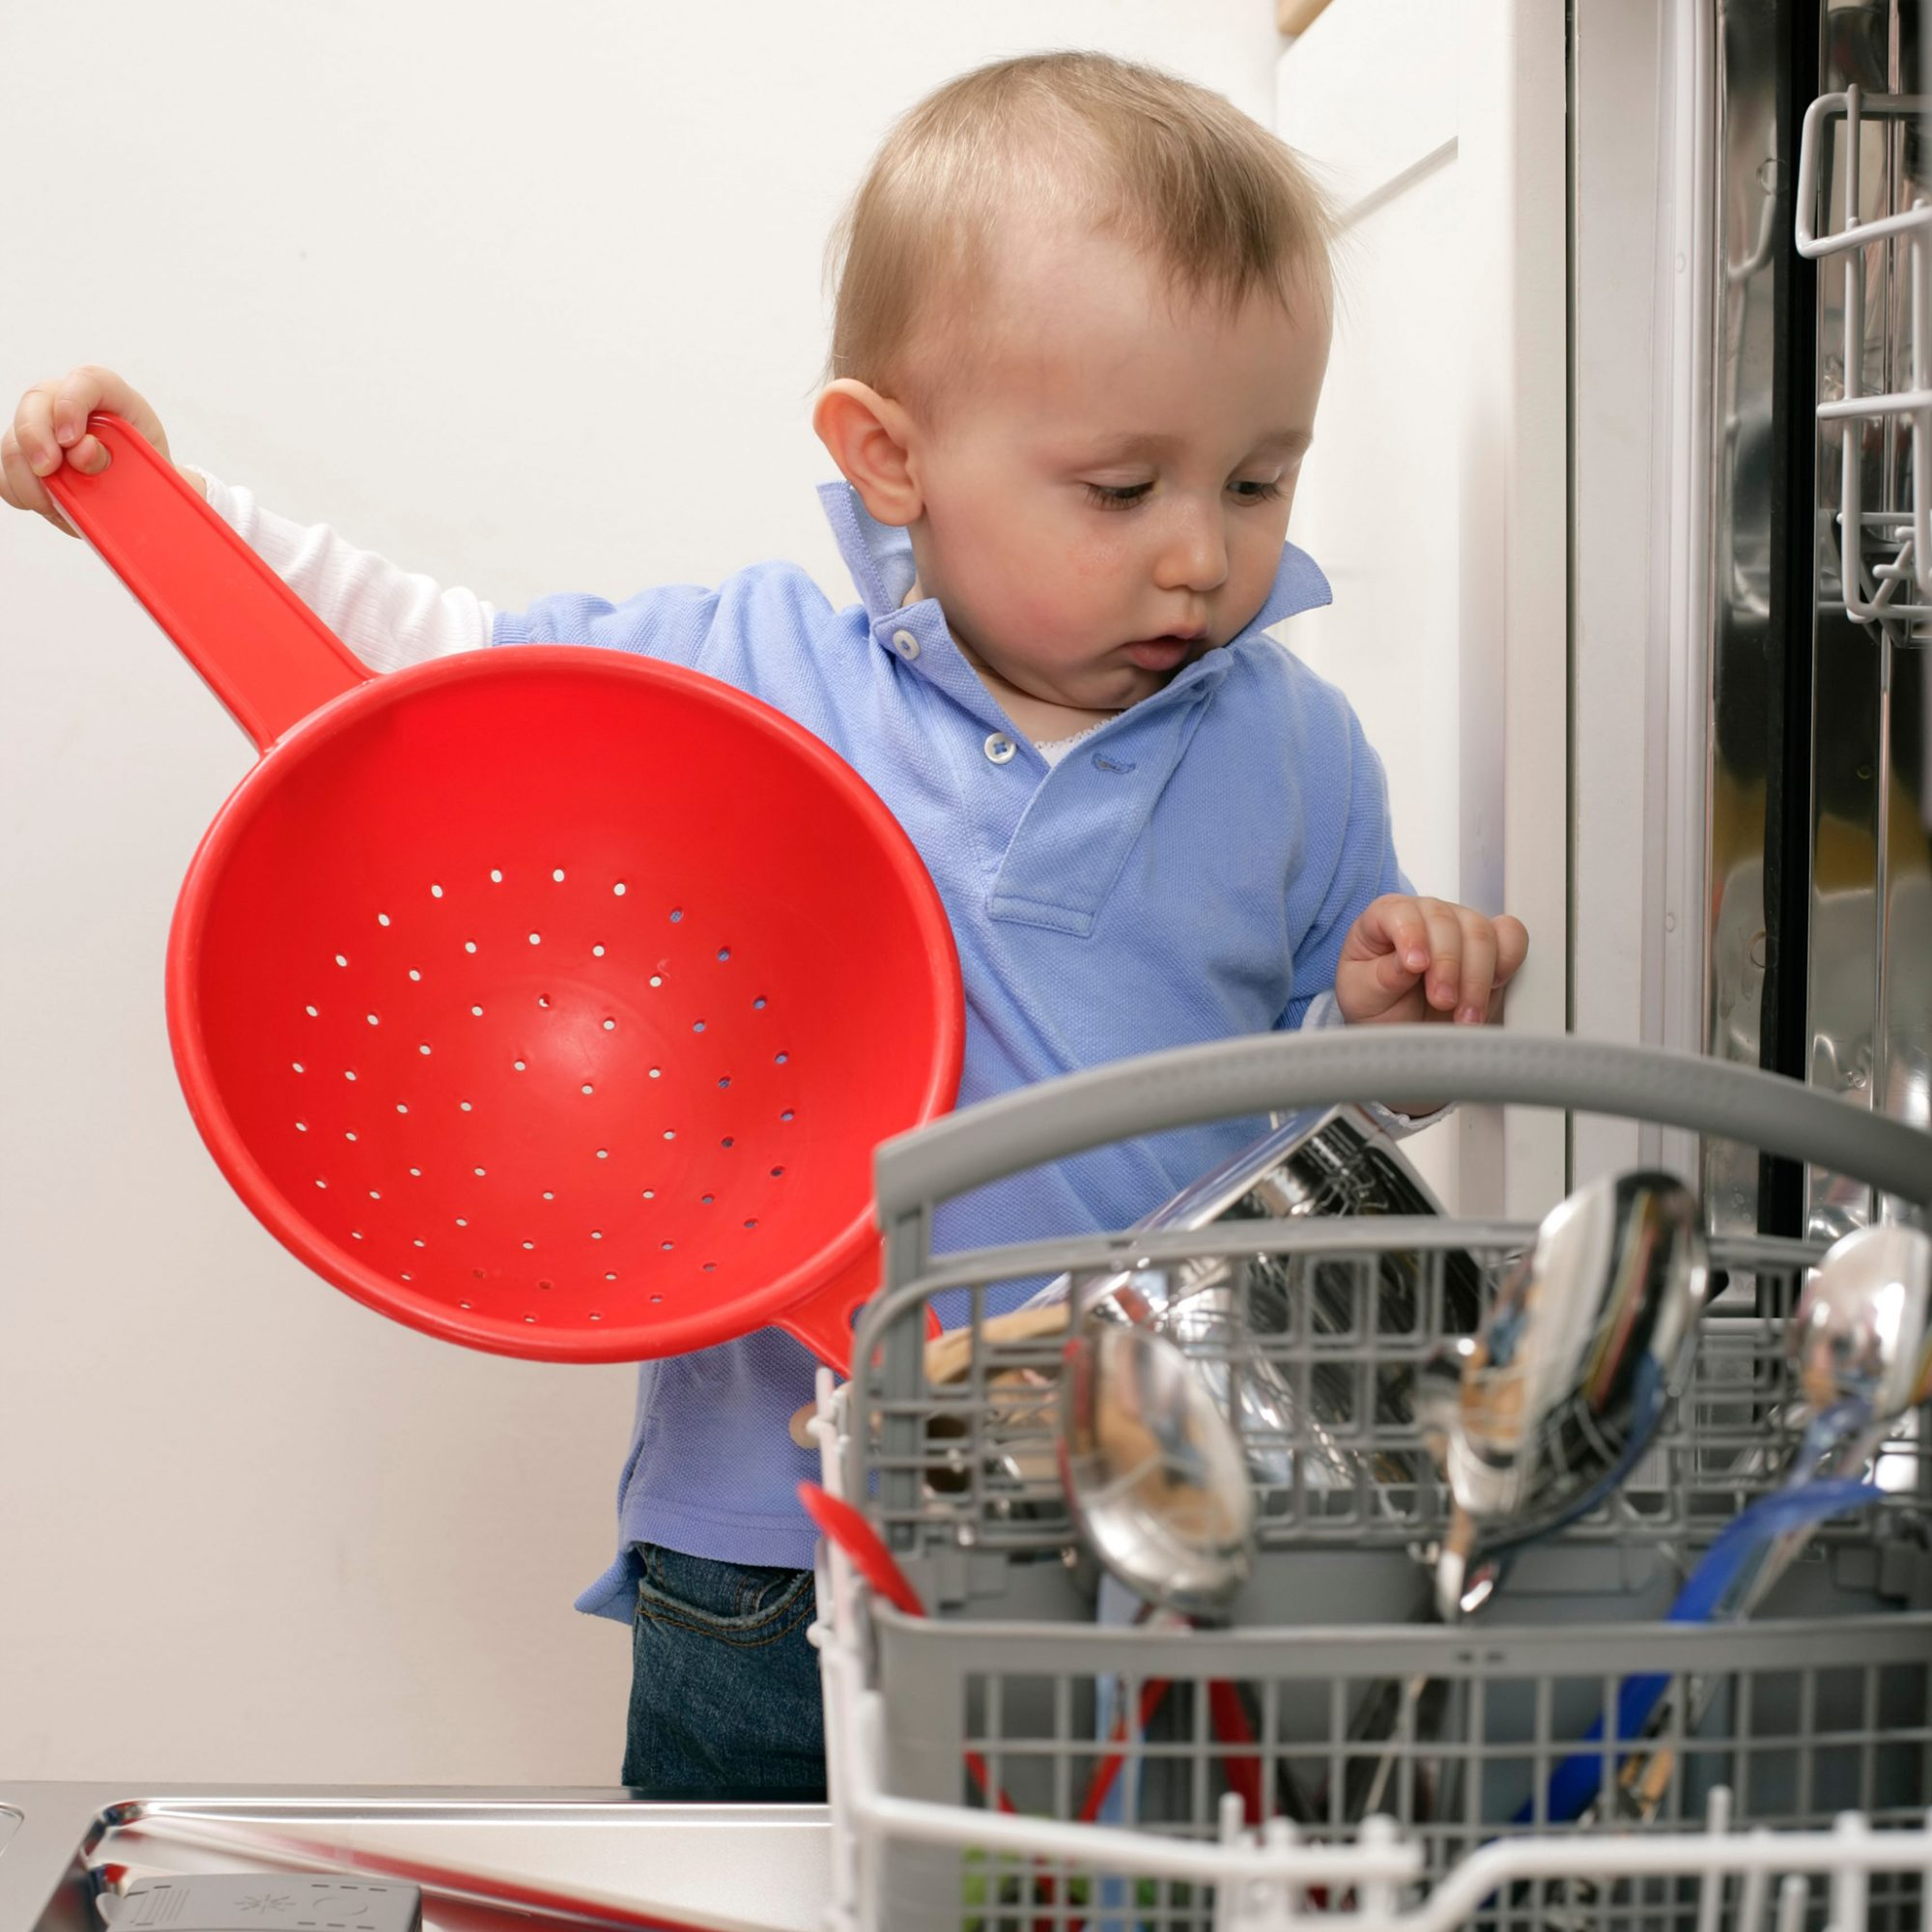 A New Study Suggests That Dishwashers Are Making Us Sick